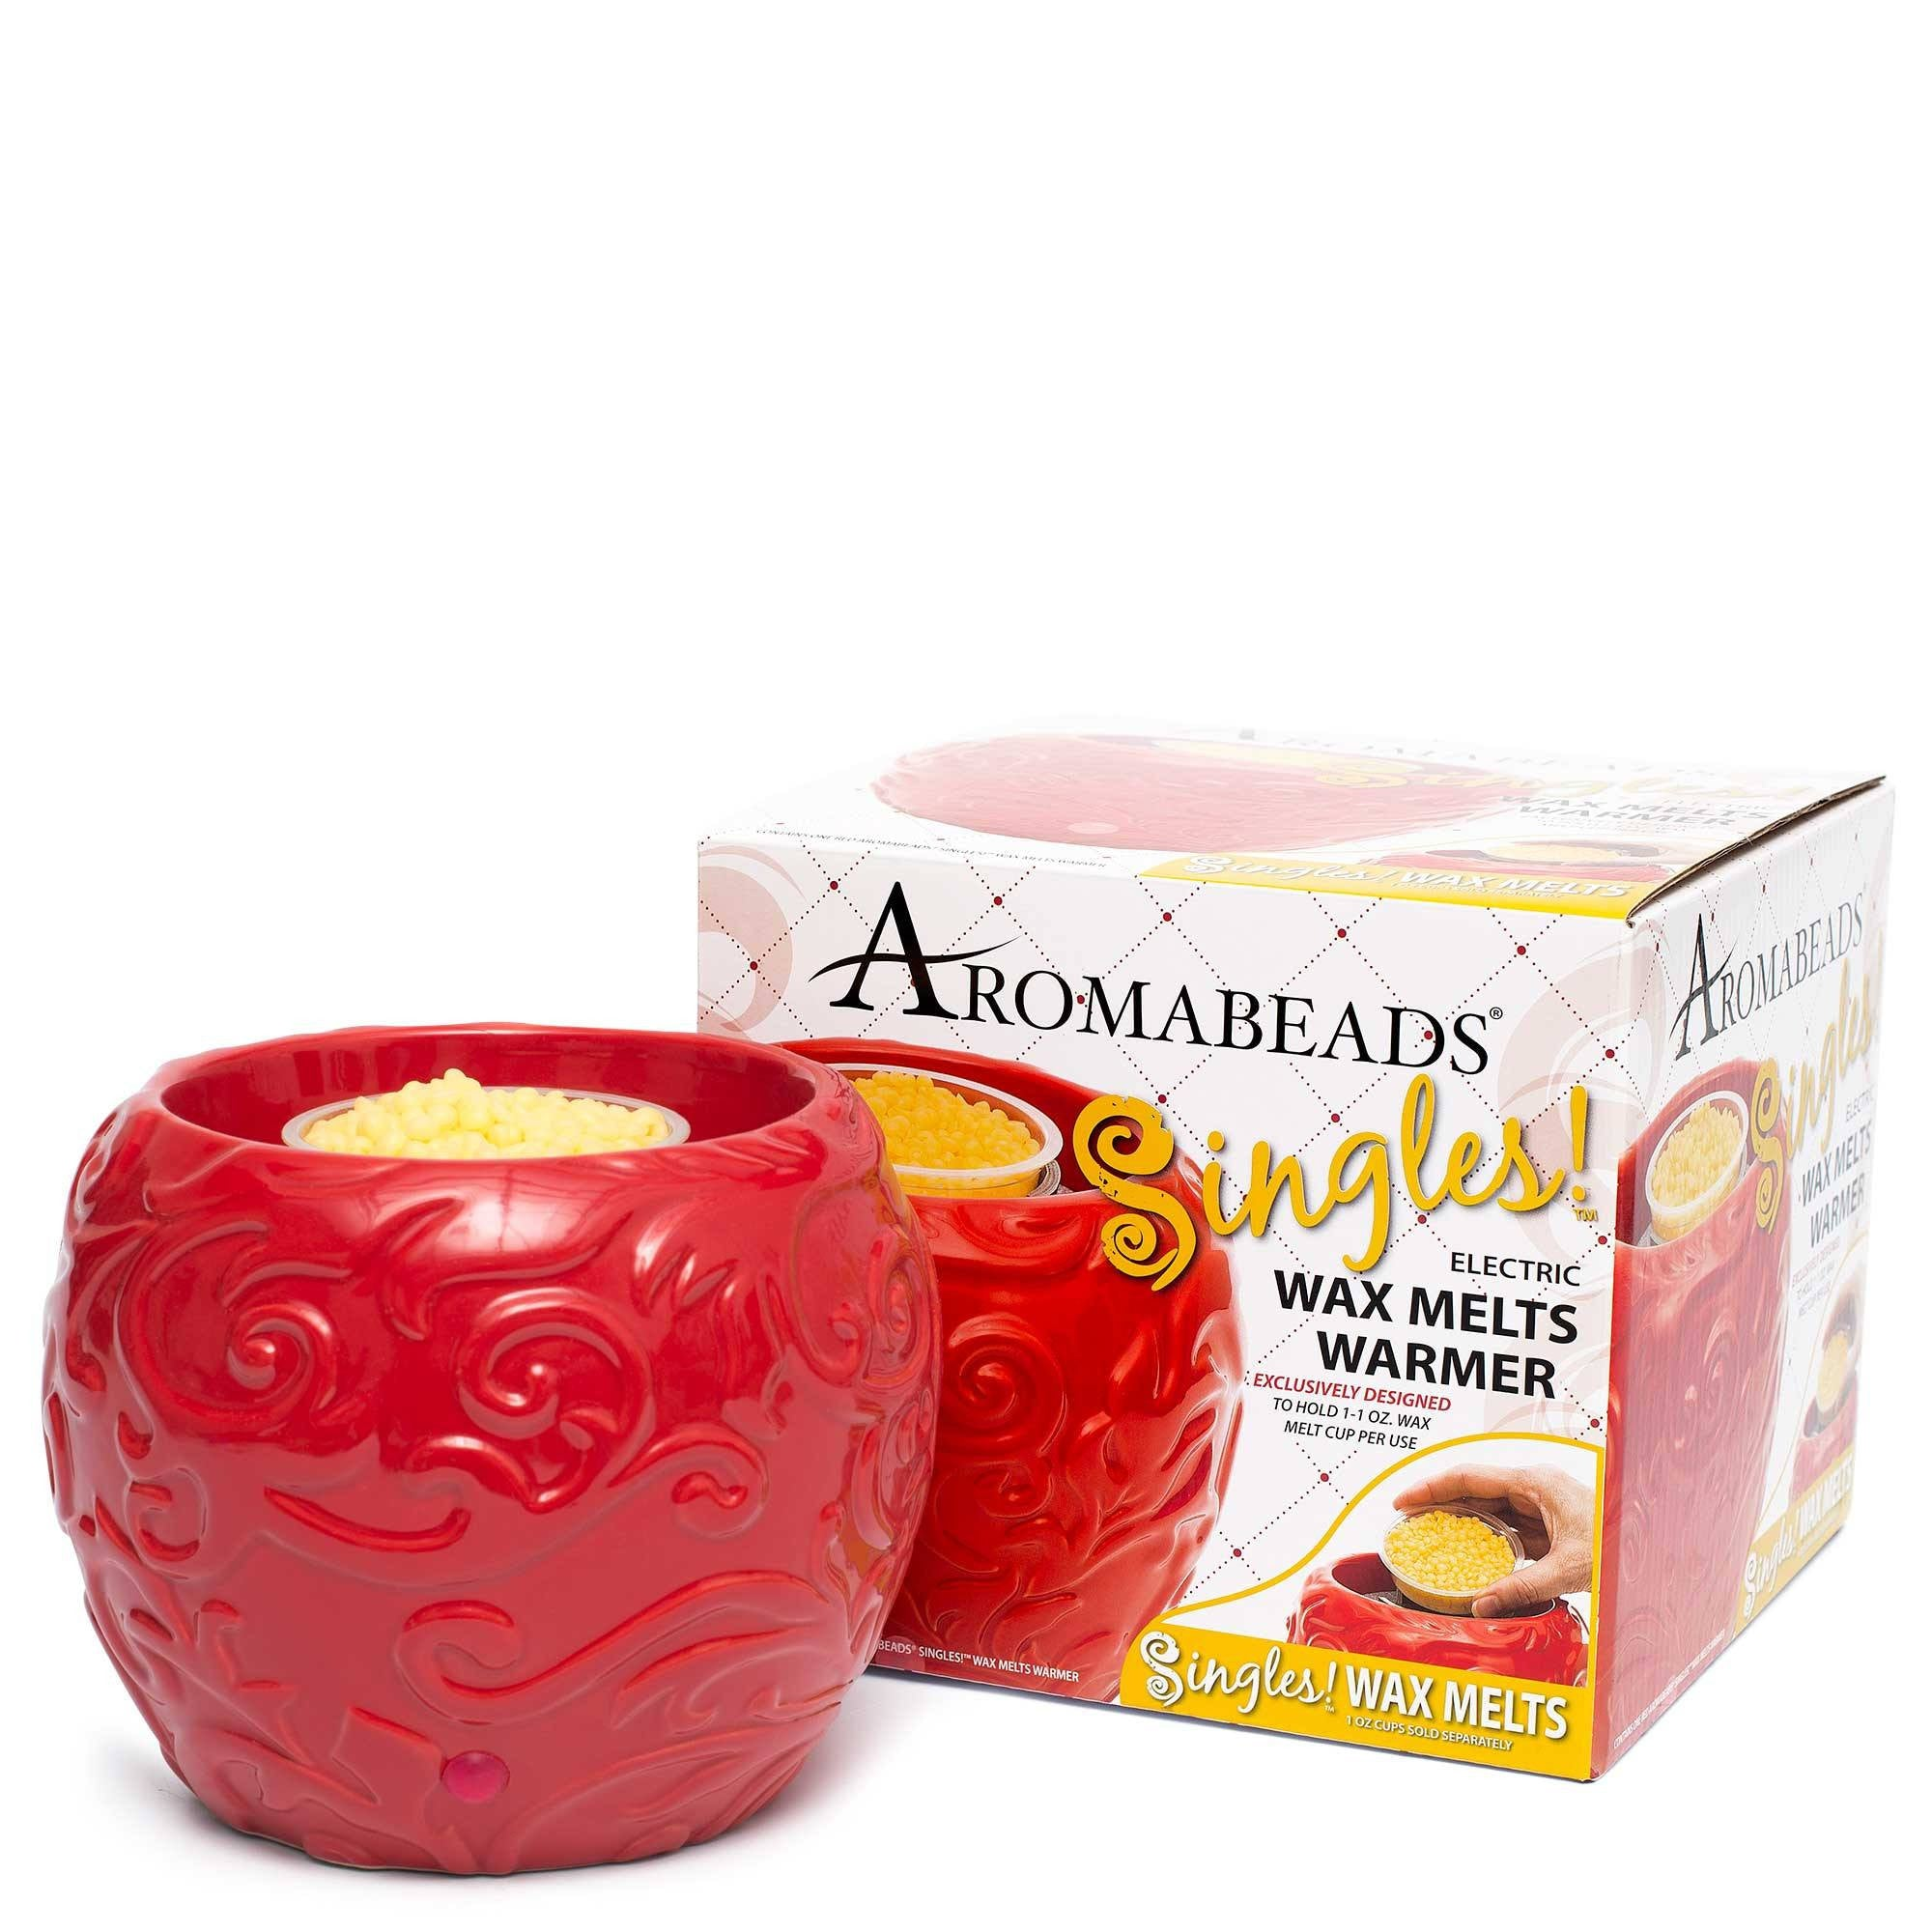 Aromabeads Singles Tropical Smoothie Scented Wax Melts - Candlemart.com - 3